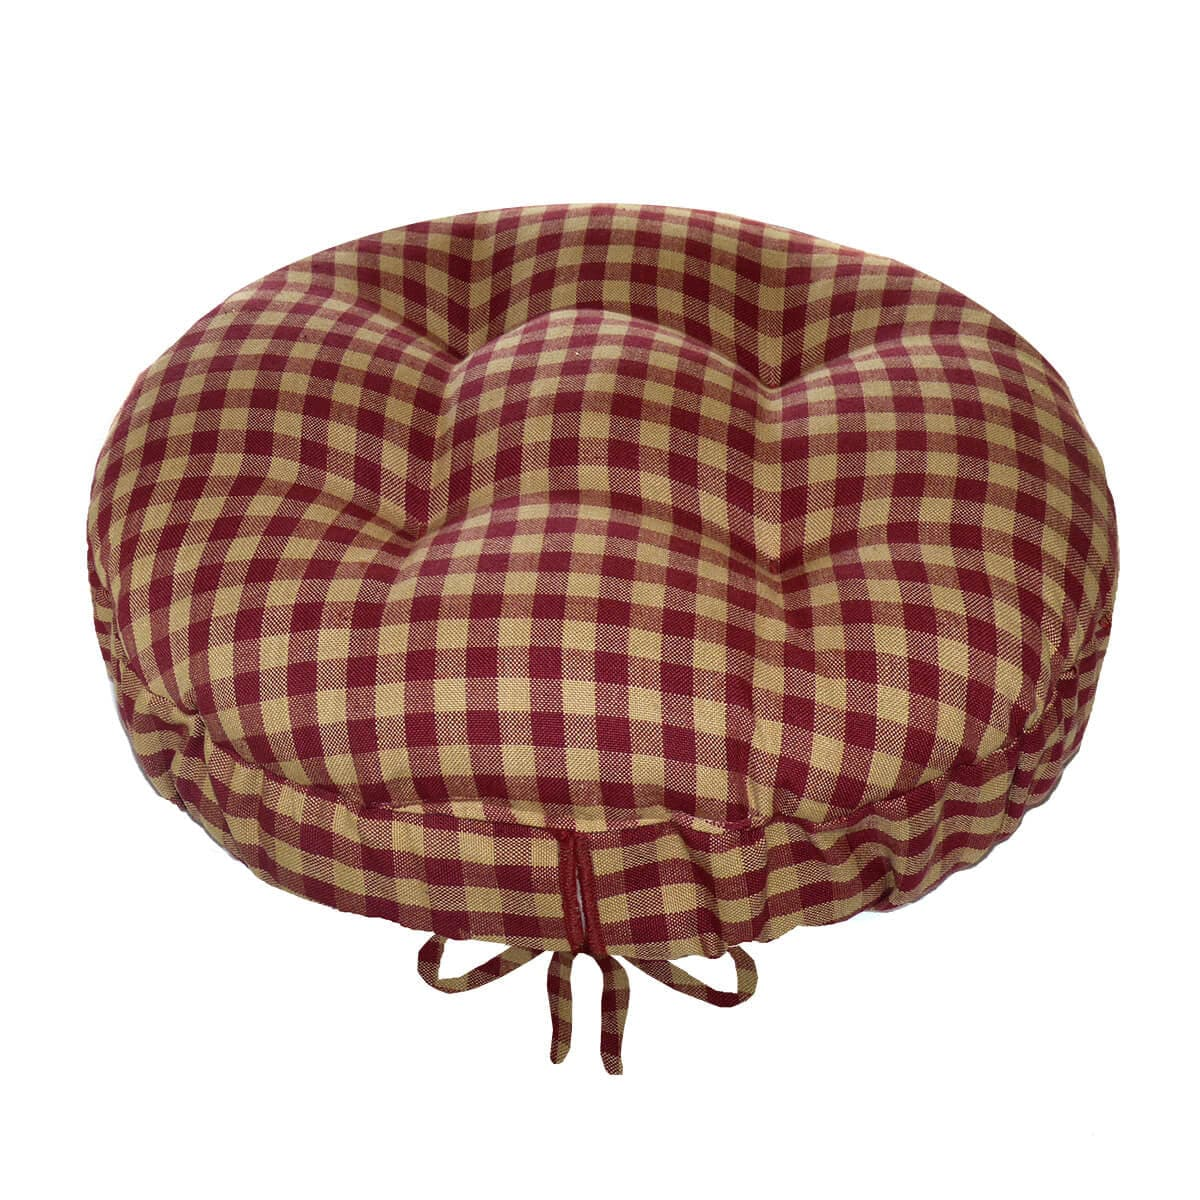 Checkers Red & Tan Bar Stool Cover With Cushion And